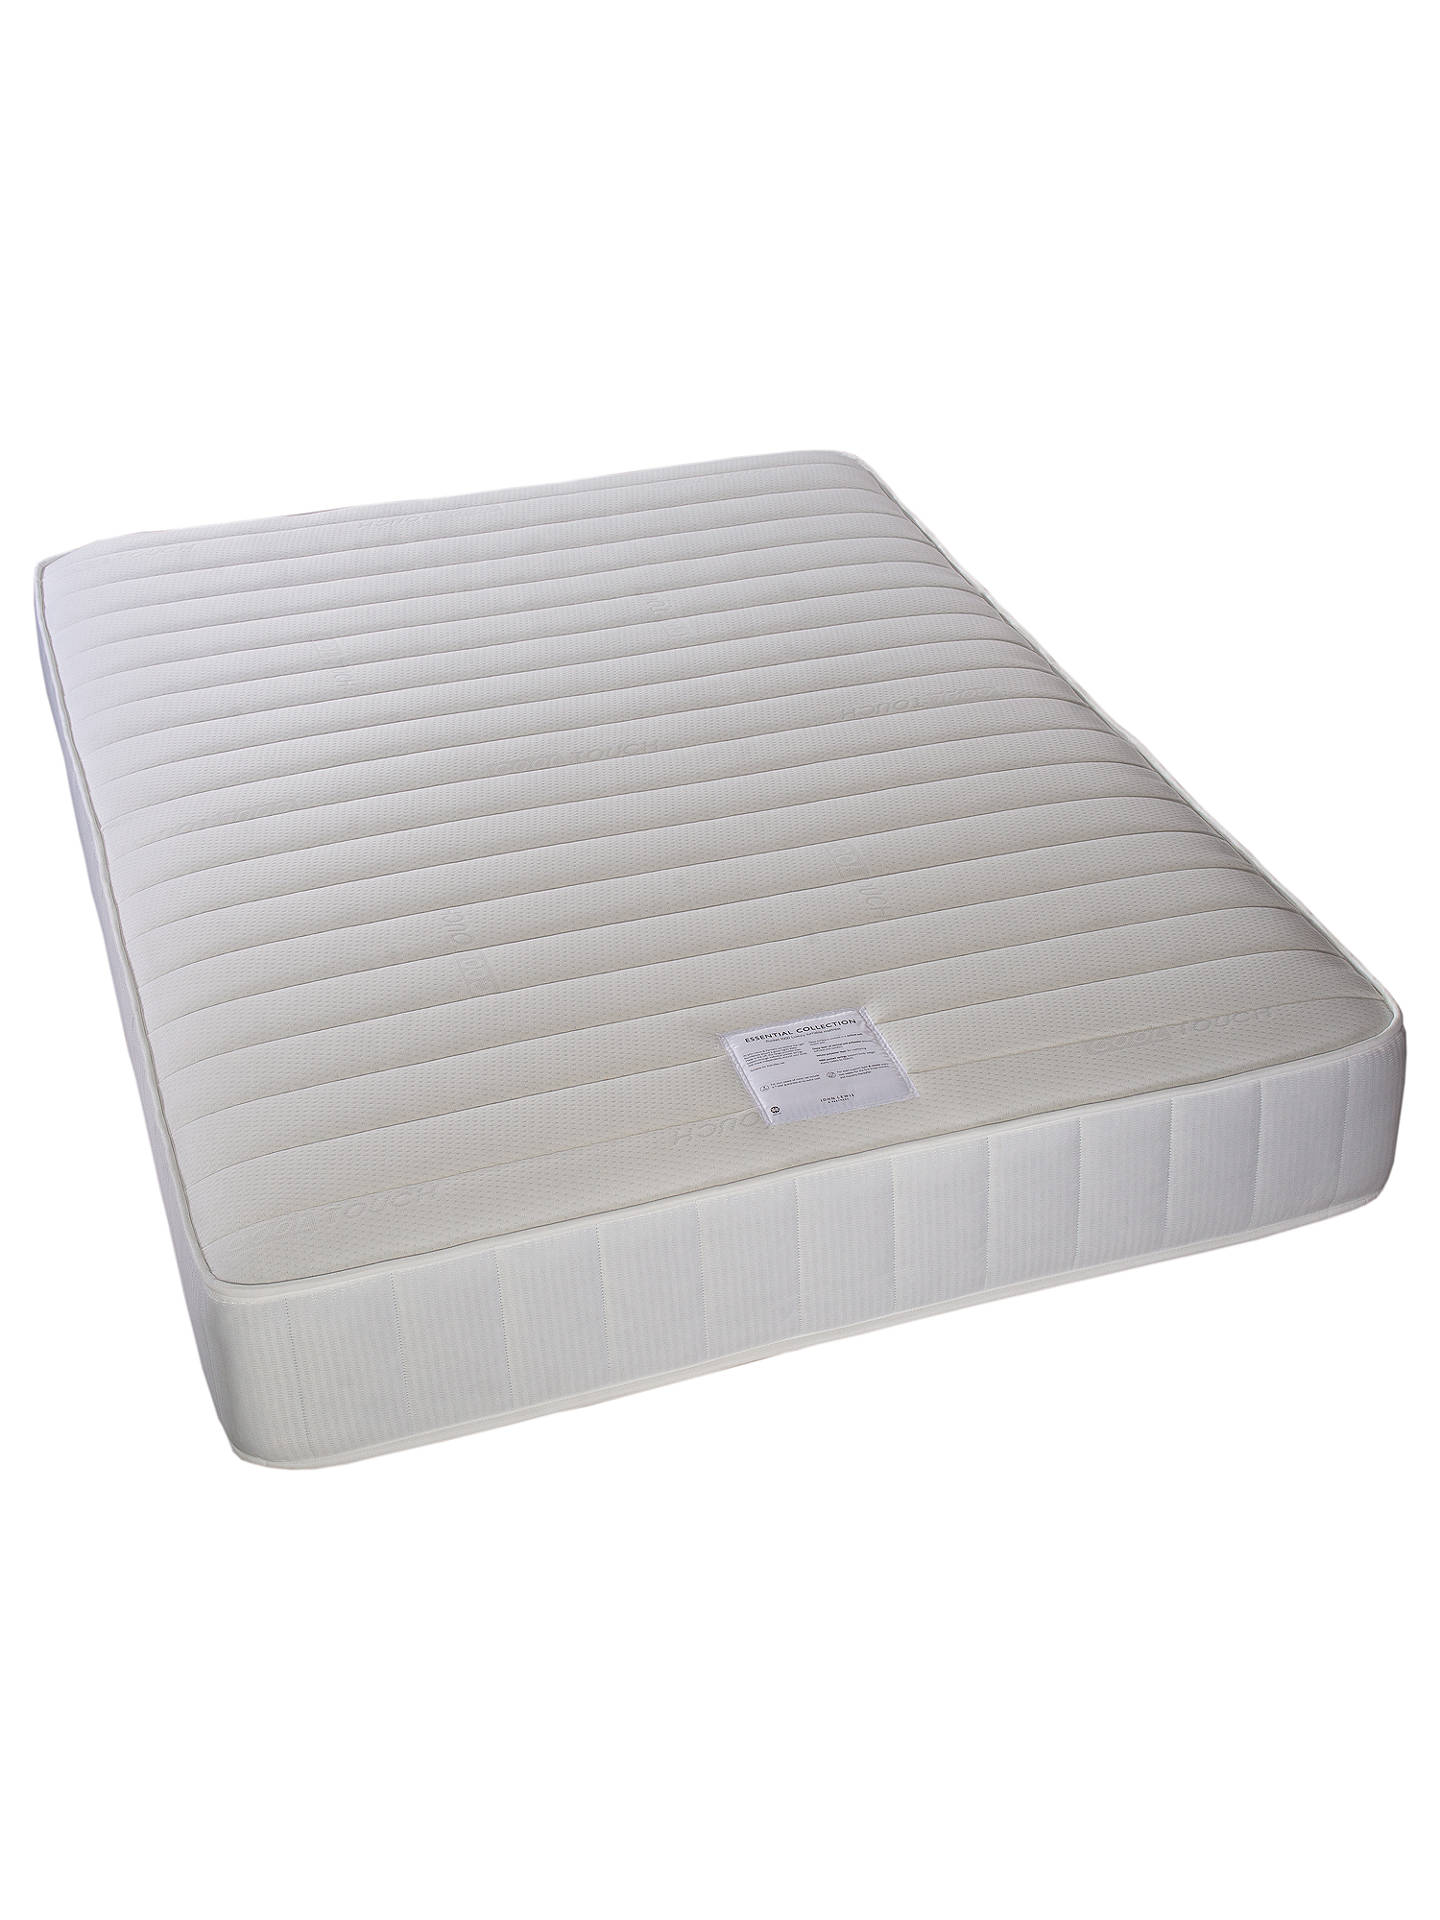 BuyJohn Lewis & Partners Essentials Collection Pocket 1000 Luxury, Medium Tension, Pocket Spring Turnable Mattress, Small Double Online at johnlewis.com